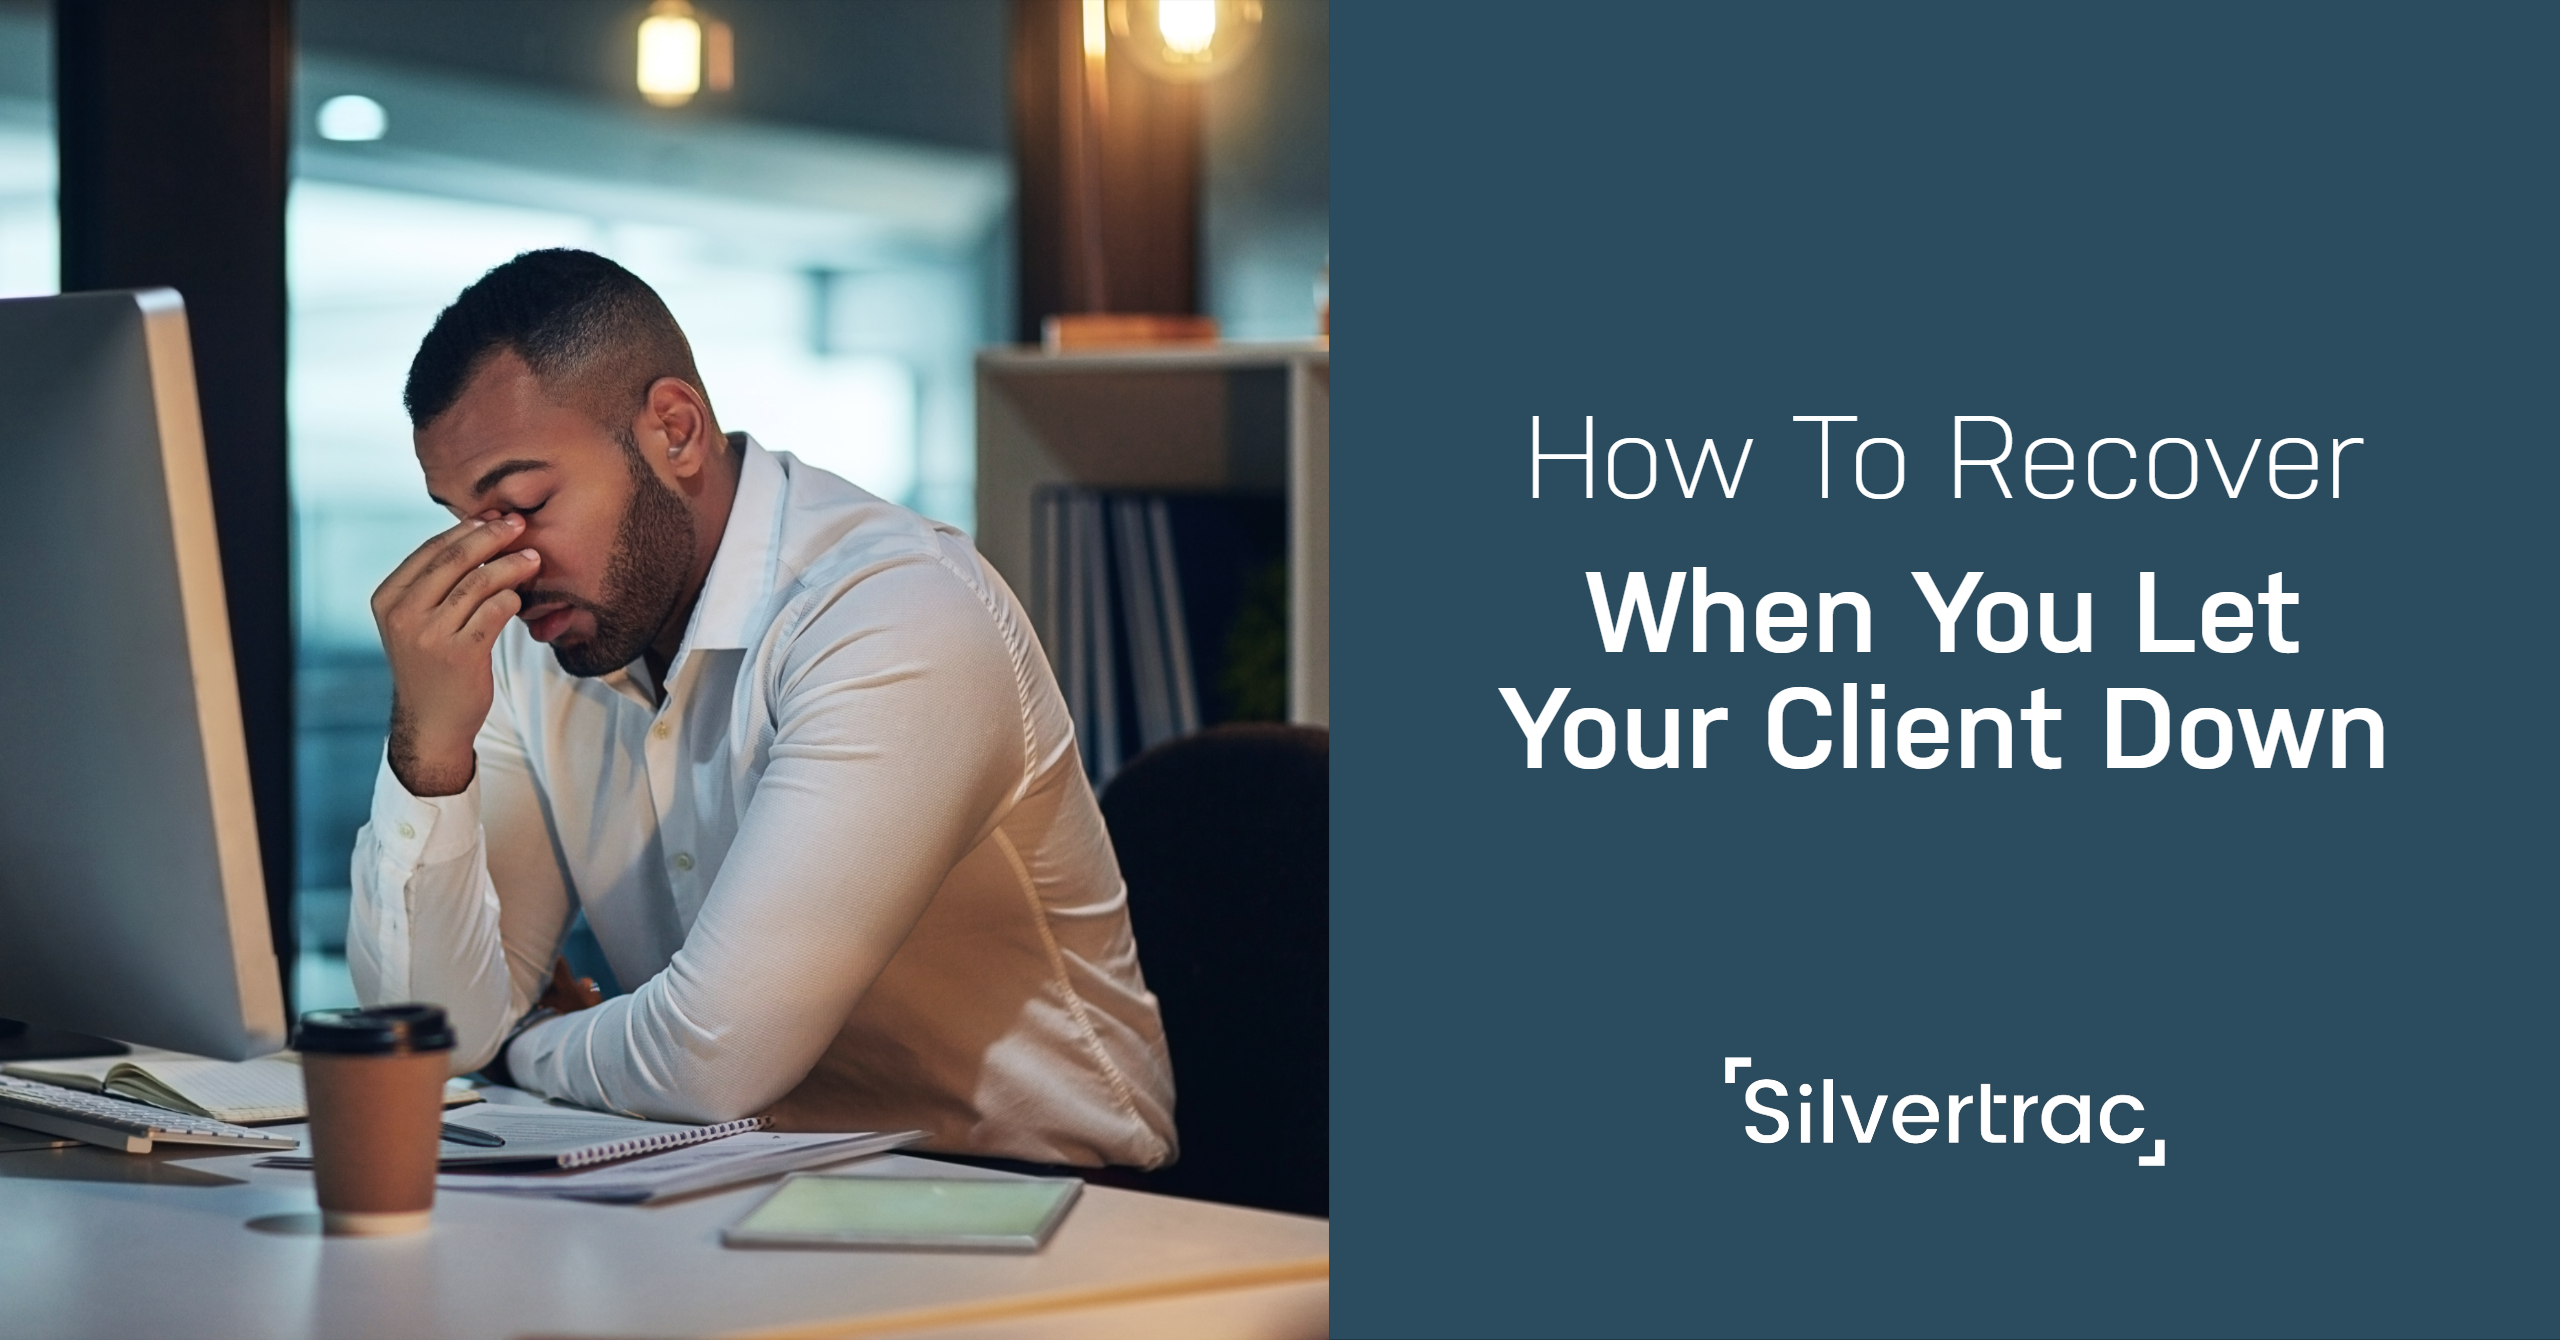 How to Recover From Letting Your Client Down